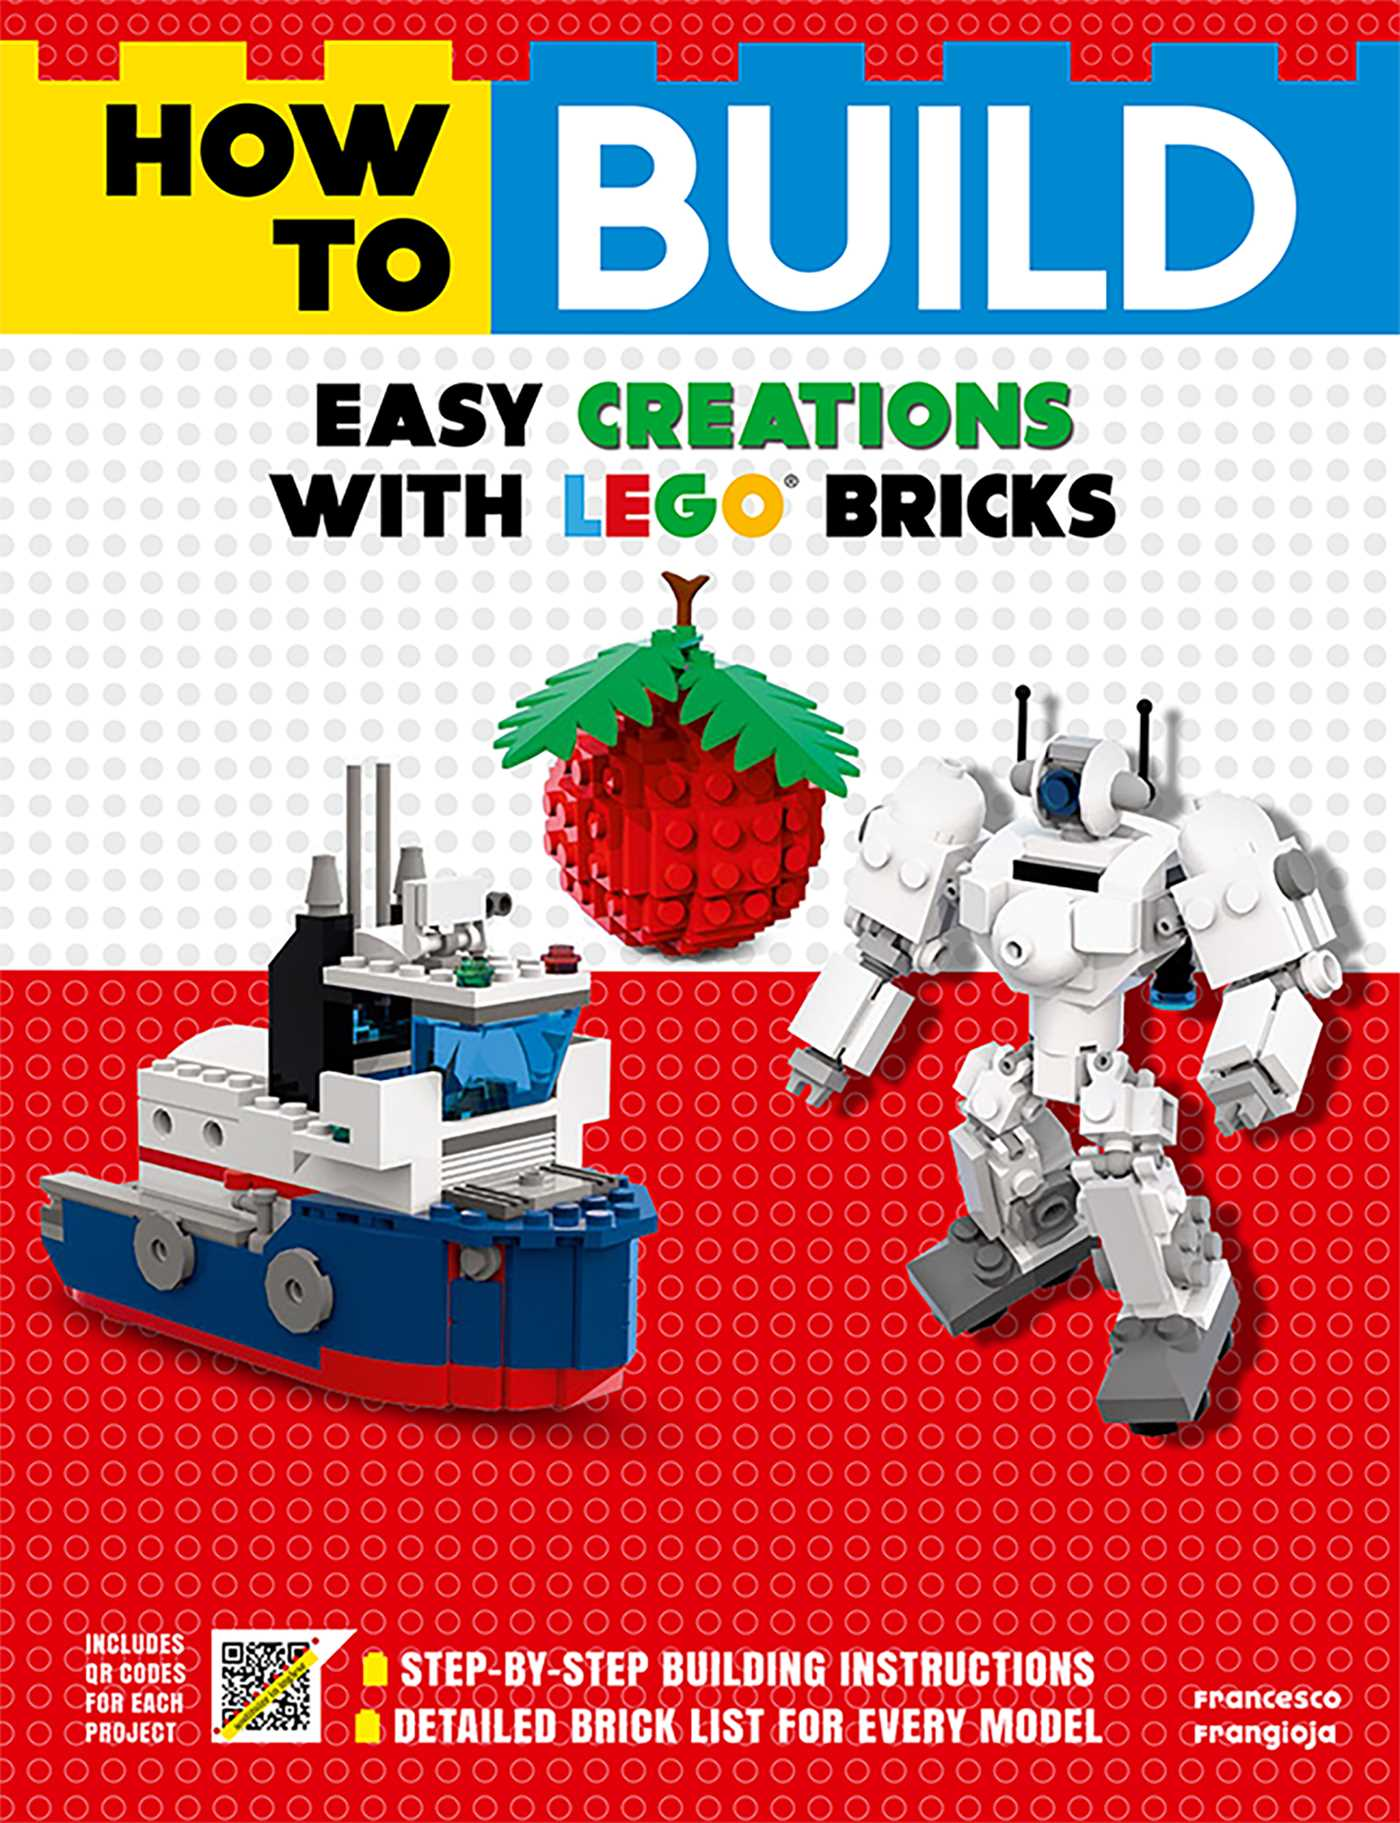 How To Build Easy Creations With Lego Bricks Book By Francesco